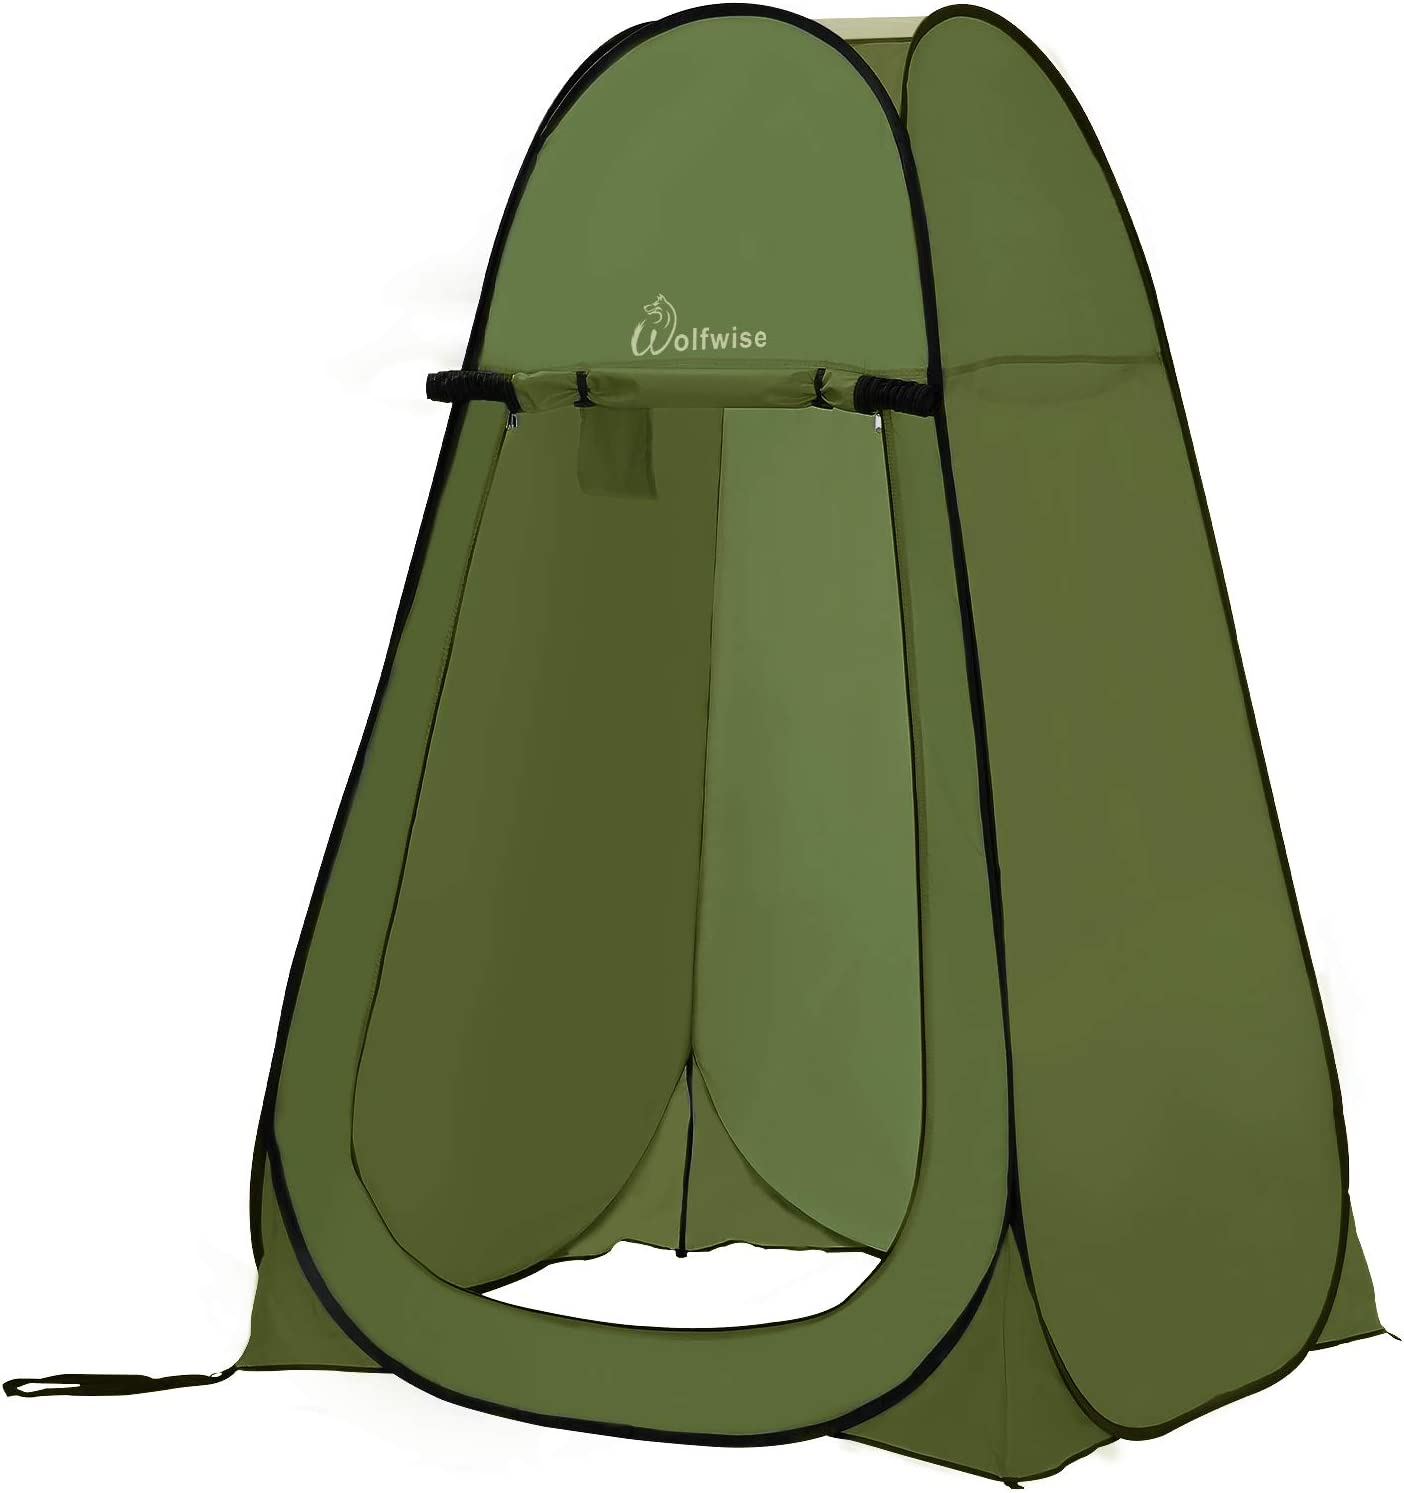 WolfWise Pop-up Shower Tent Green : Sports & Outdoors